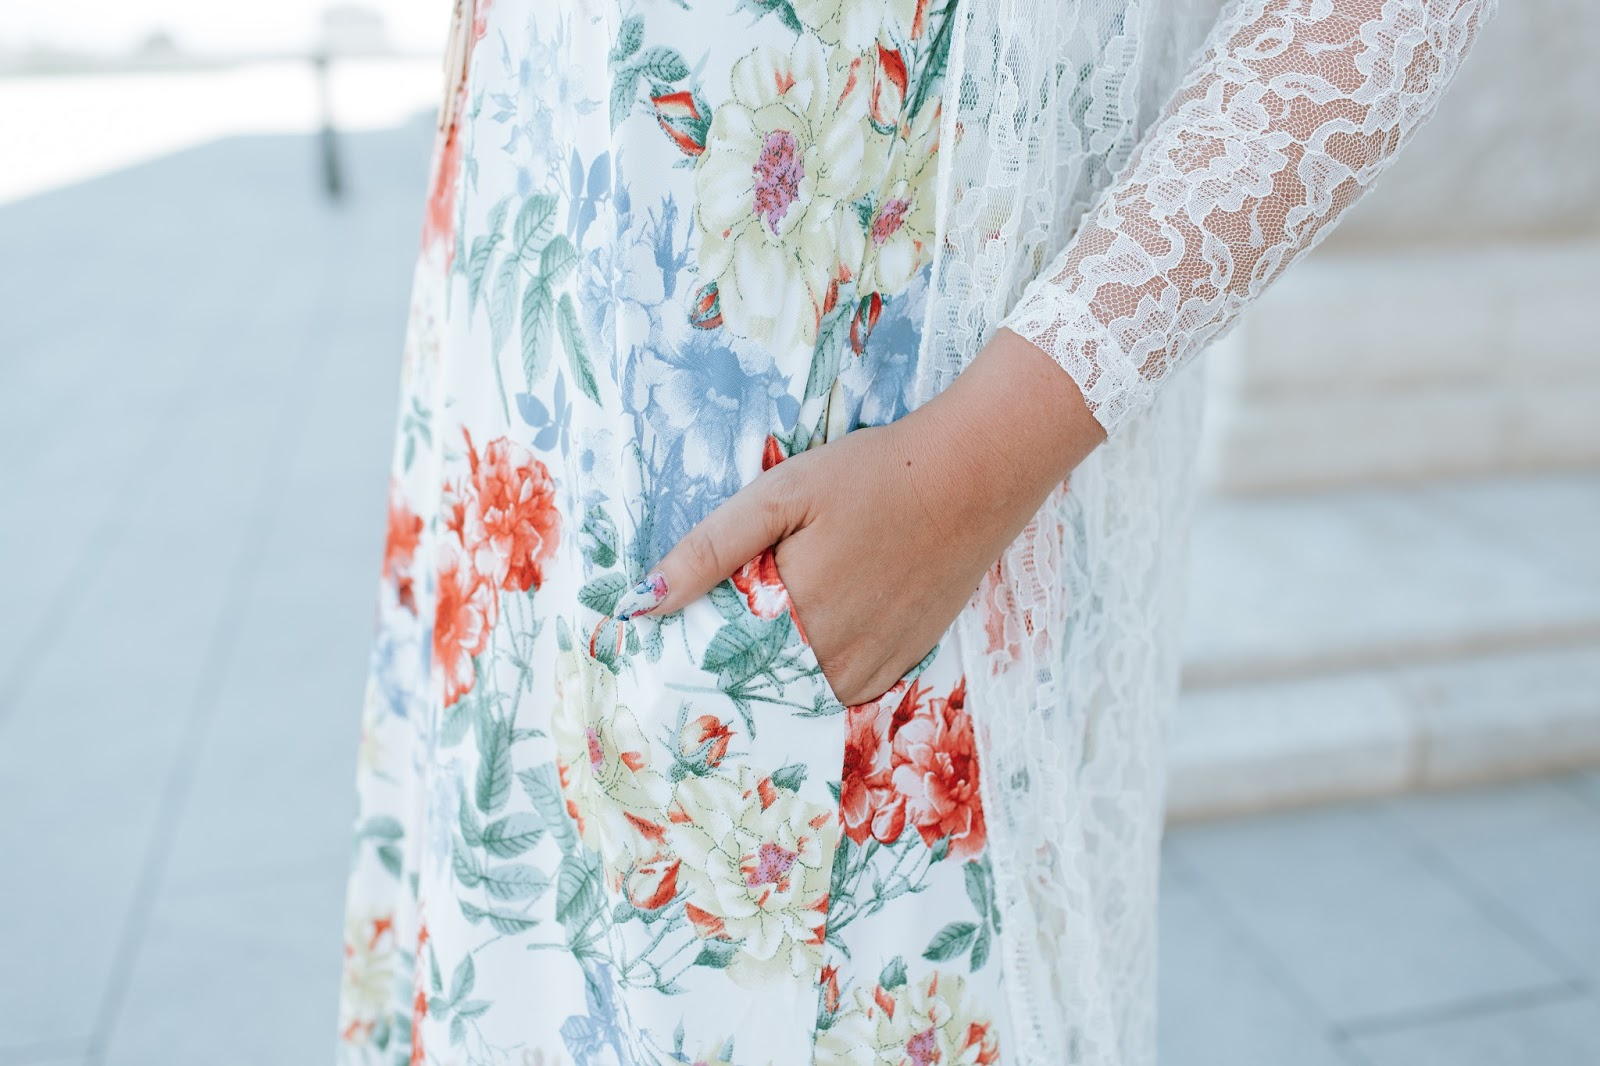 Lace Details, Summer Floral, The Red Closet Shop